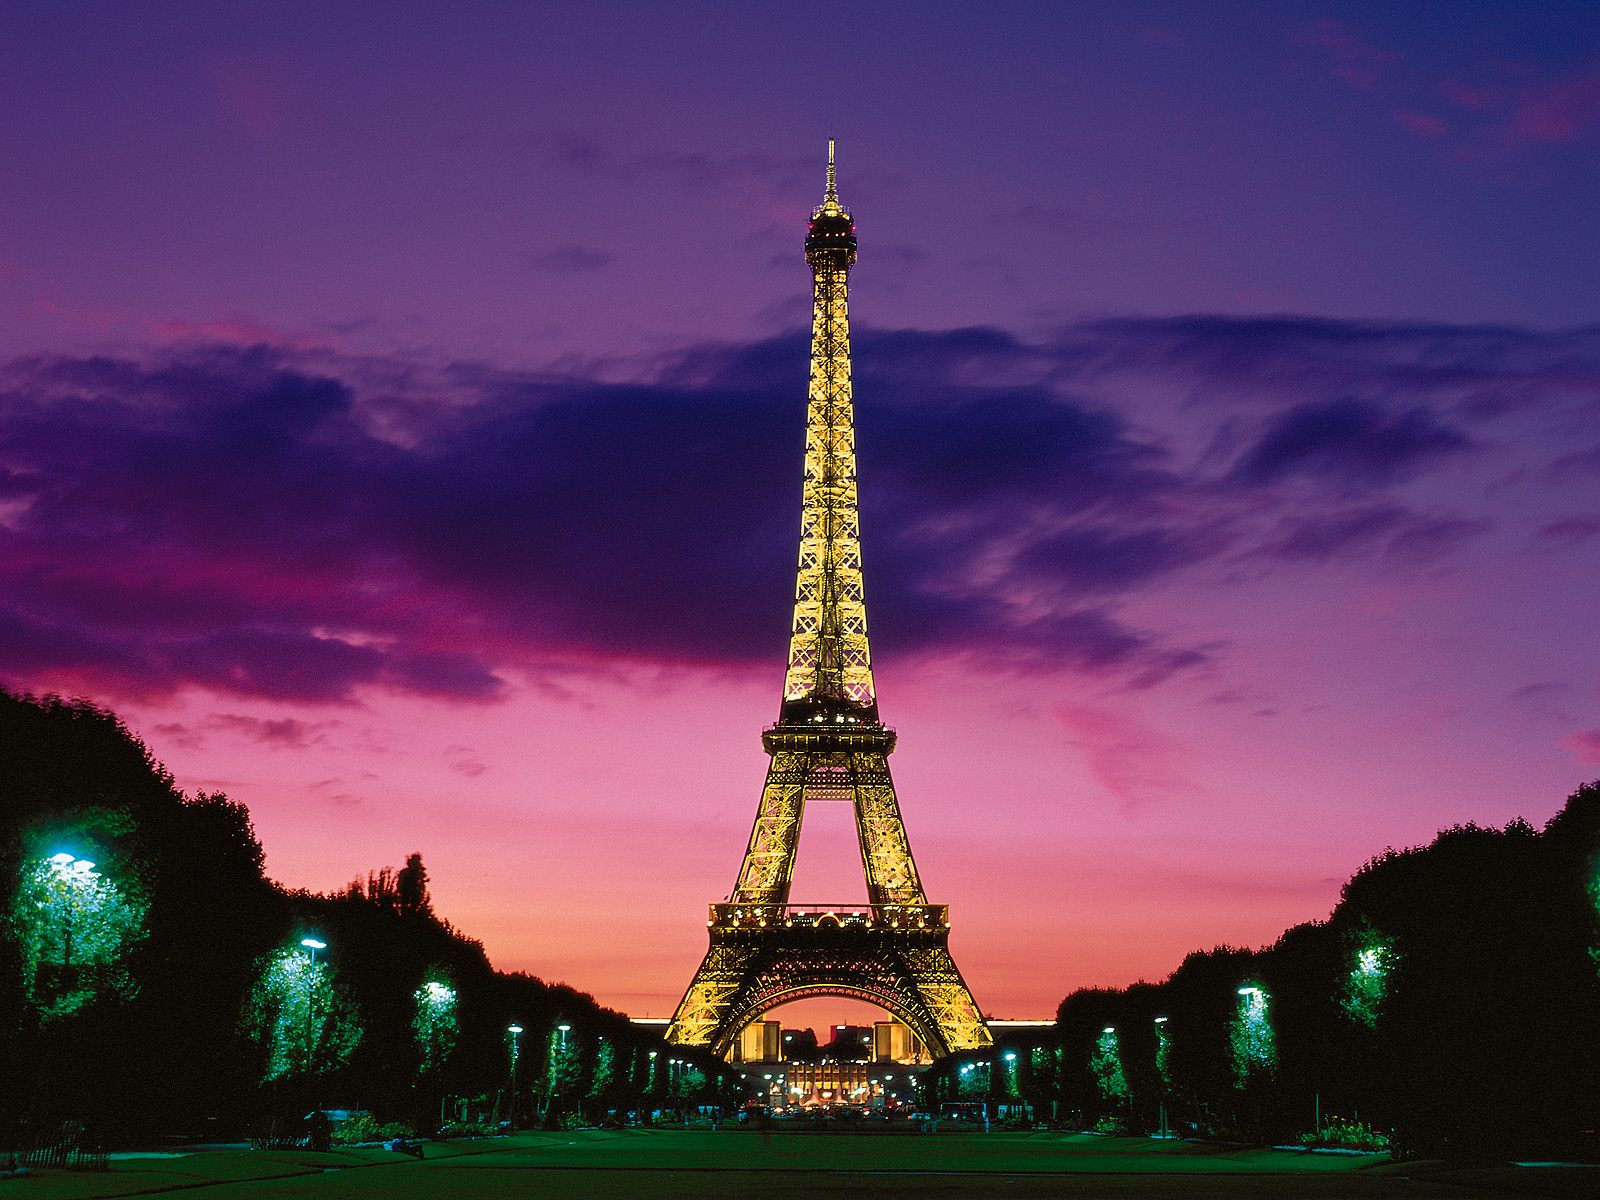 http://1.bp.blogspot.com/_LHlW9y4Qd4Q/TSxZnzEniUI/AAAAAAAAAOU/aSZVzhLf3do/s1600/Eiffel+Tower+at+Night%252C+Paris%252C+France.jpg